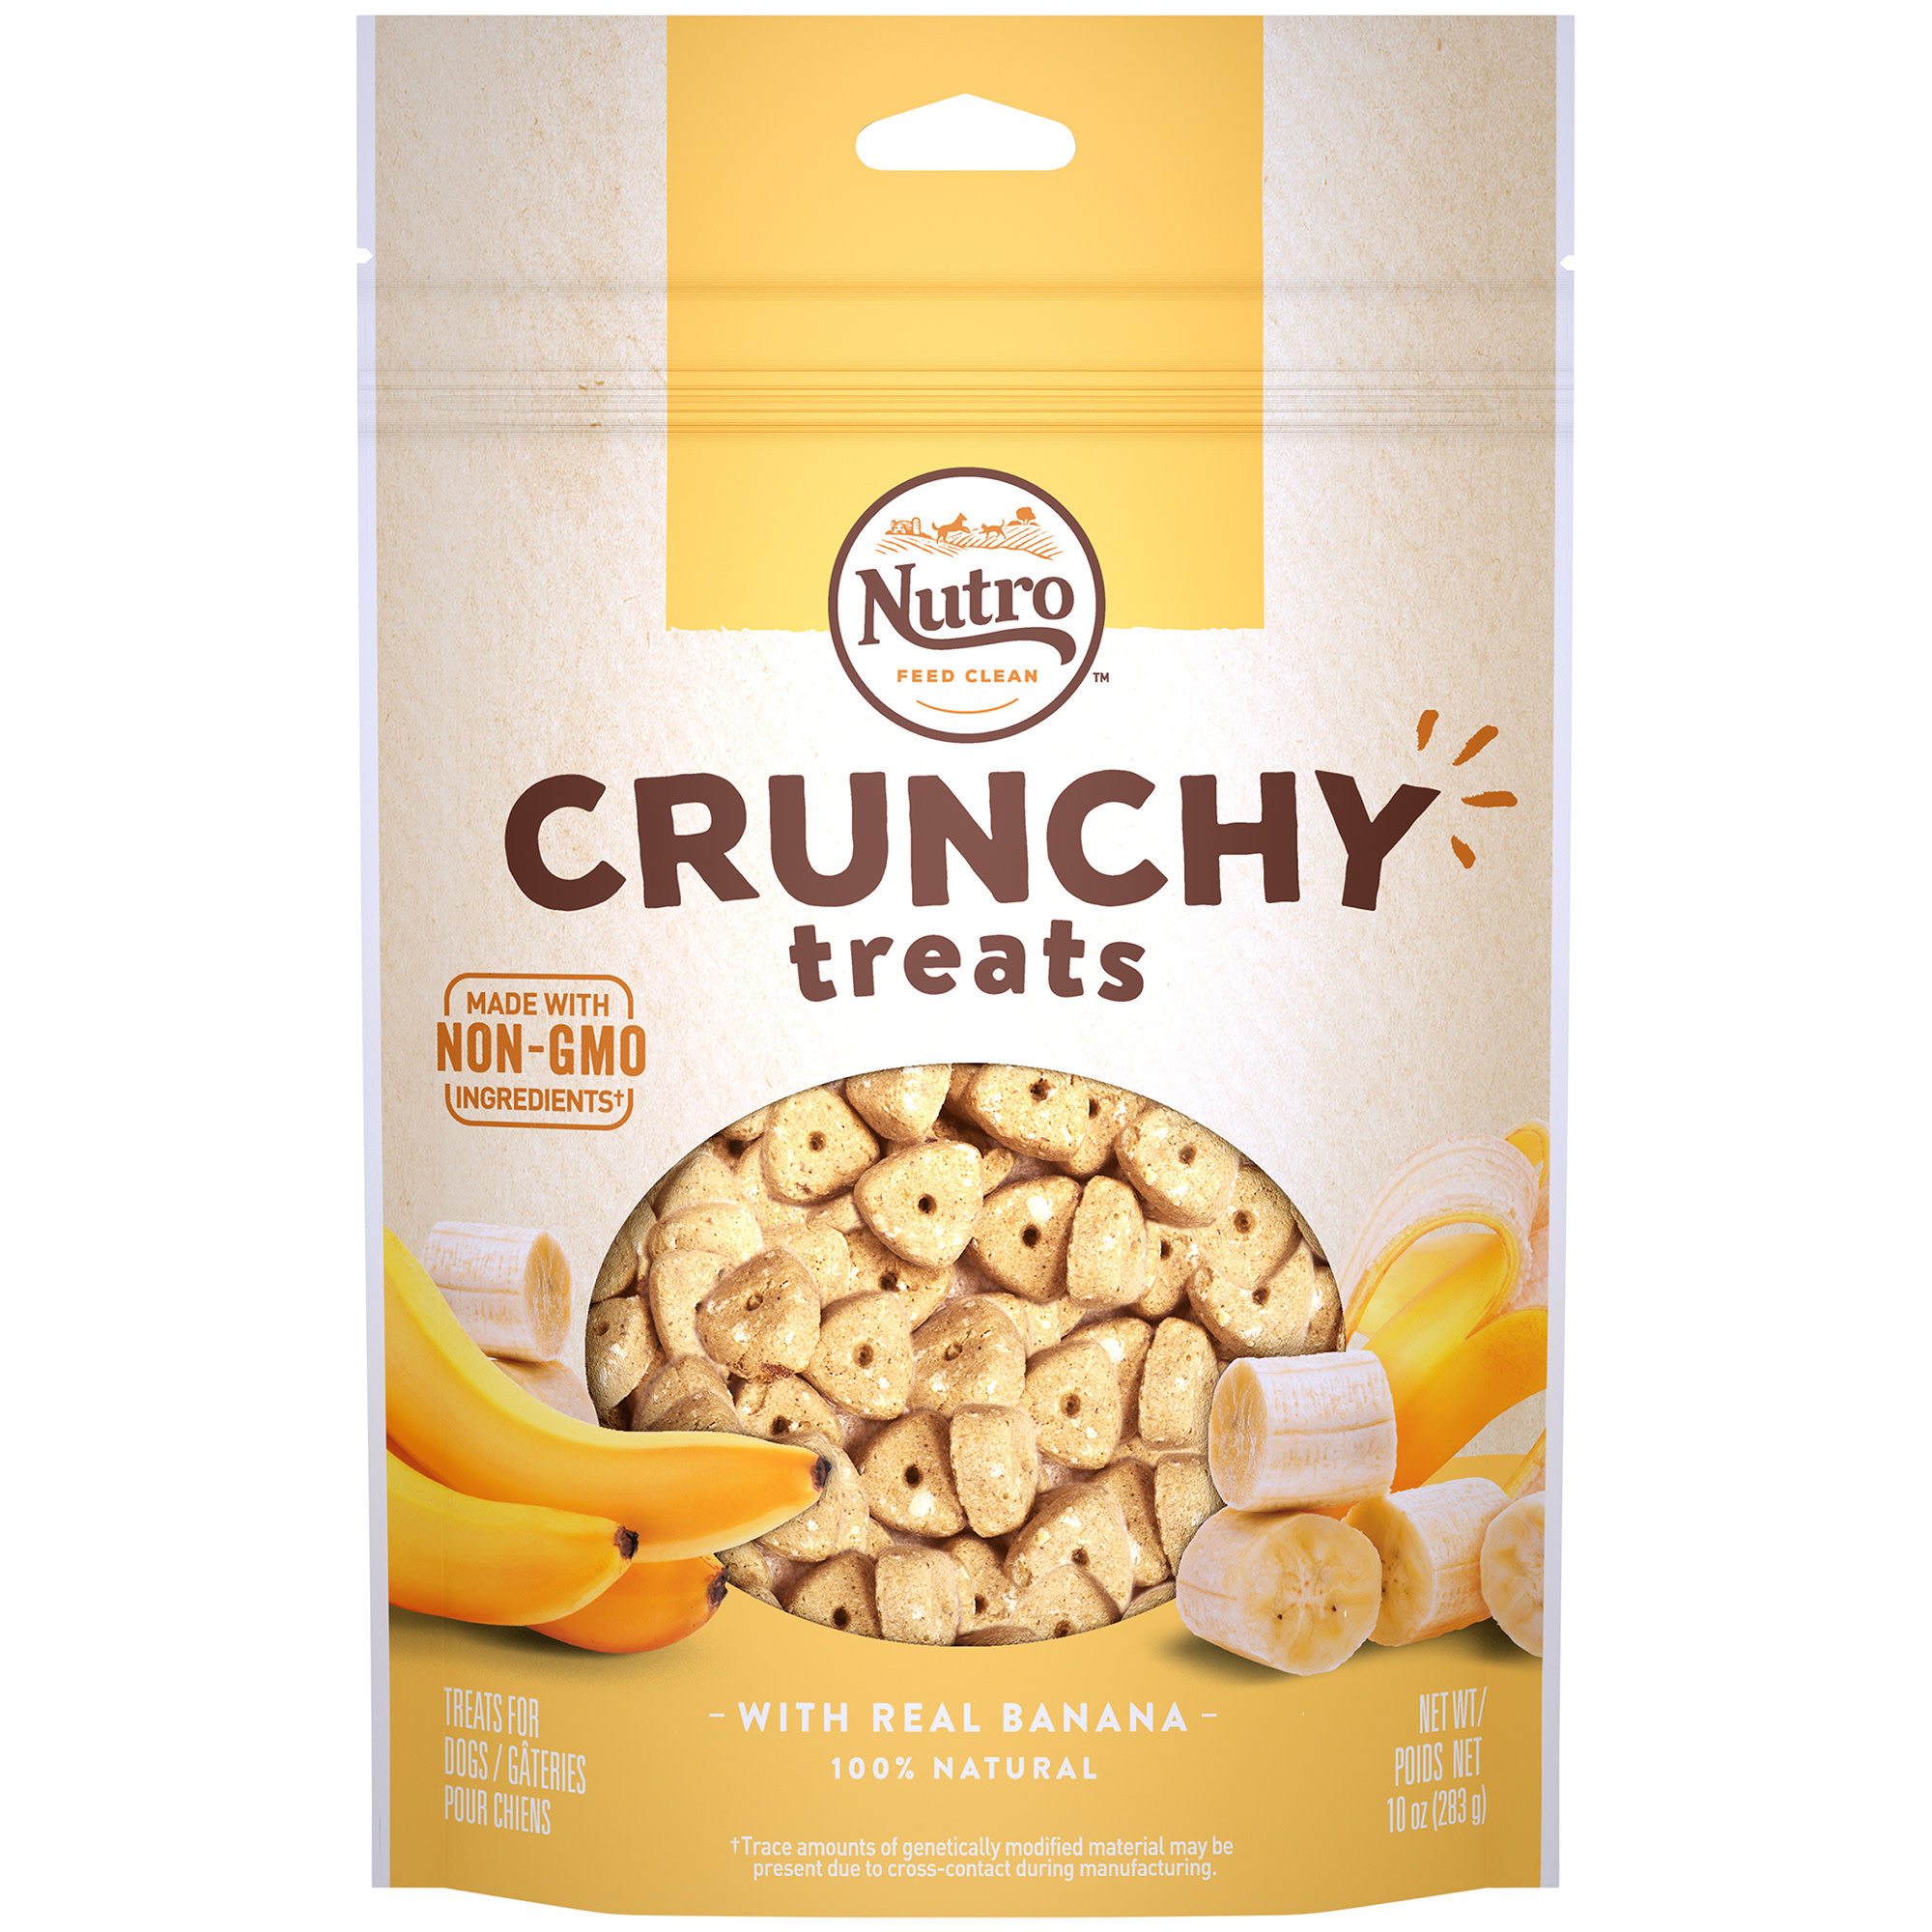 Nutro Crunchy Dog Treats with Real Banana, 10 Oz Bag by Mars Petcare Us